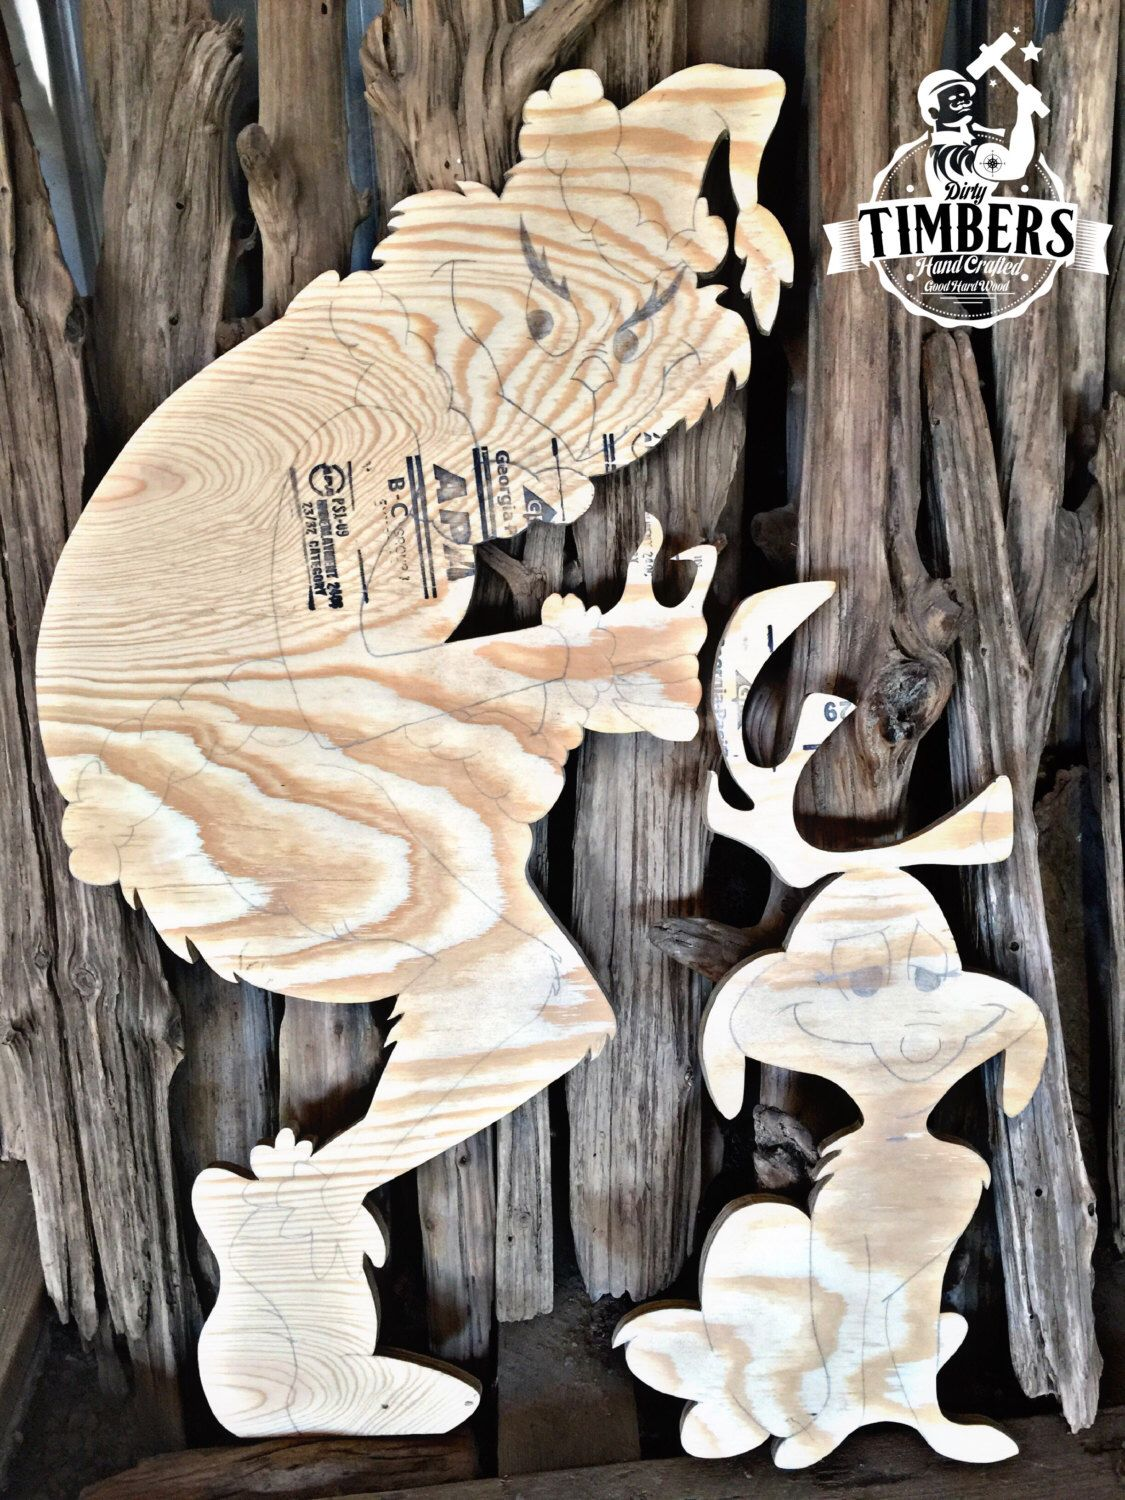 Pin On Dirty Timbers Collection